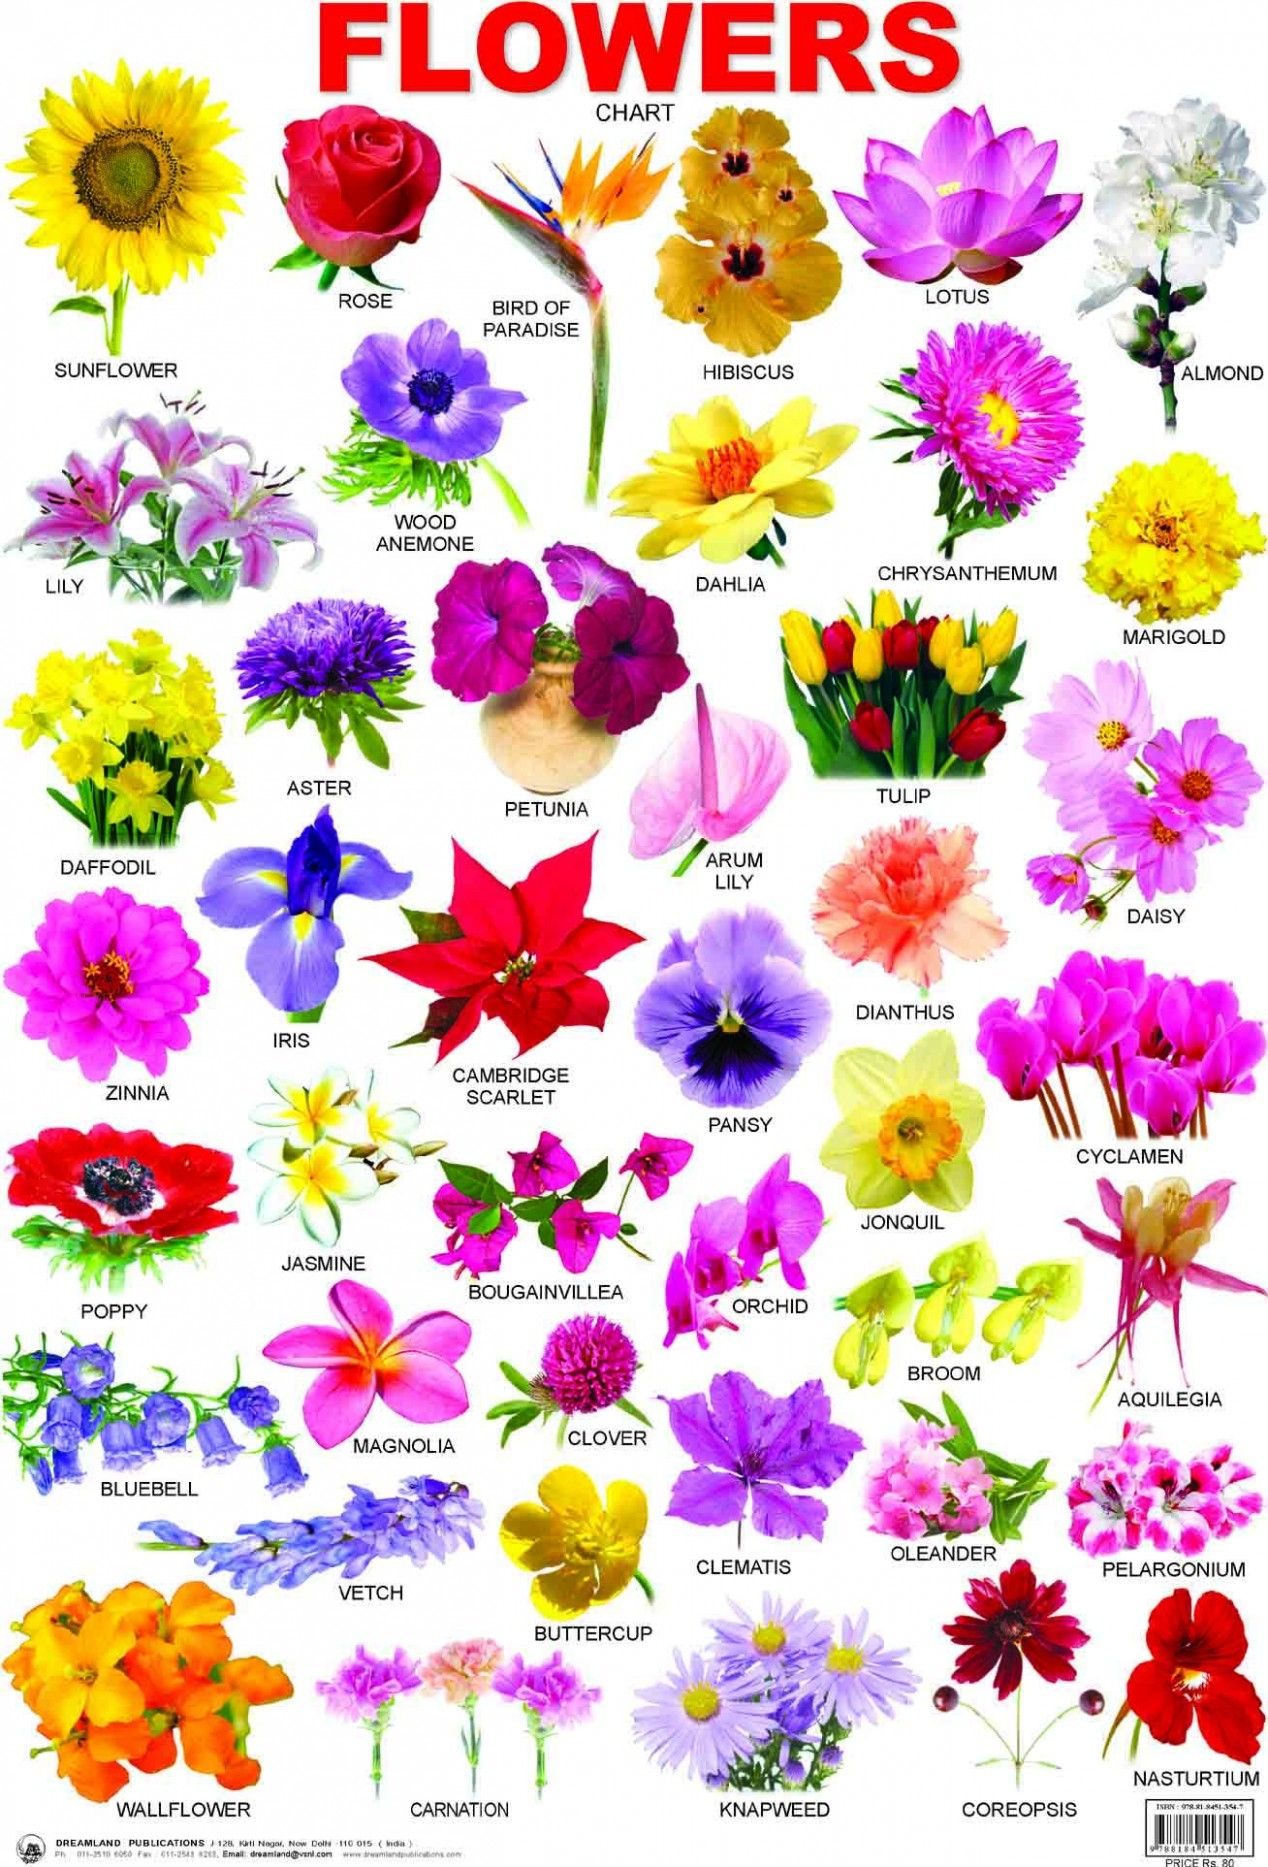 You Will Never Believe These Bizarre Truth Behind Pictures Of Flowers With Names Pictures Of Flowers All Flowers Name Indian Flower Names Flower Types Chart